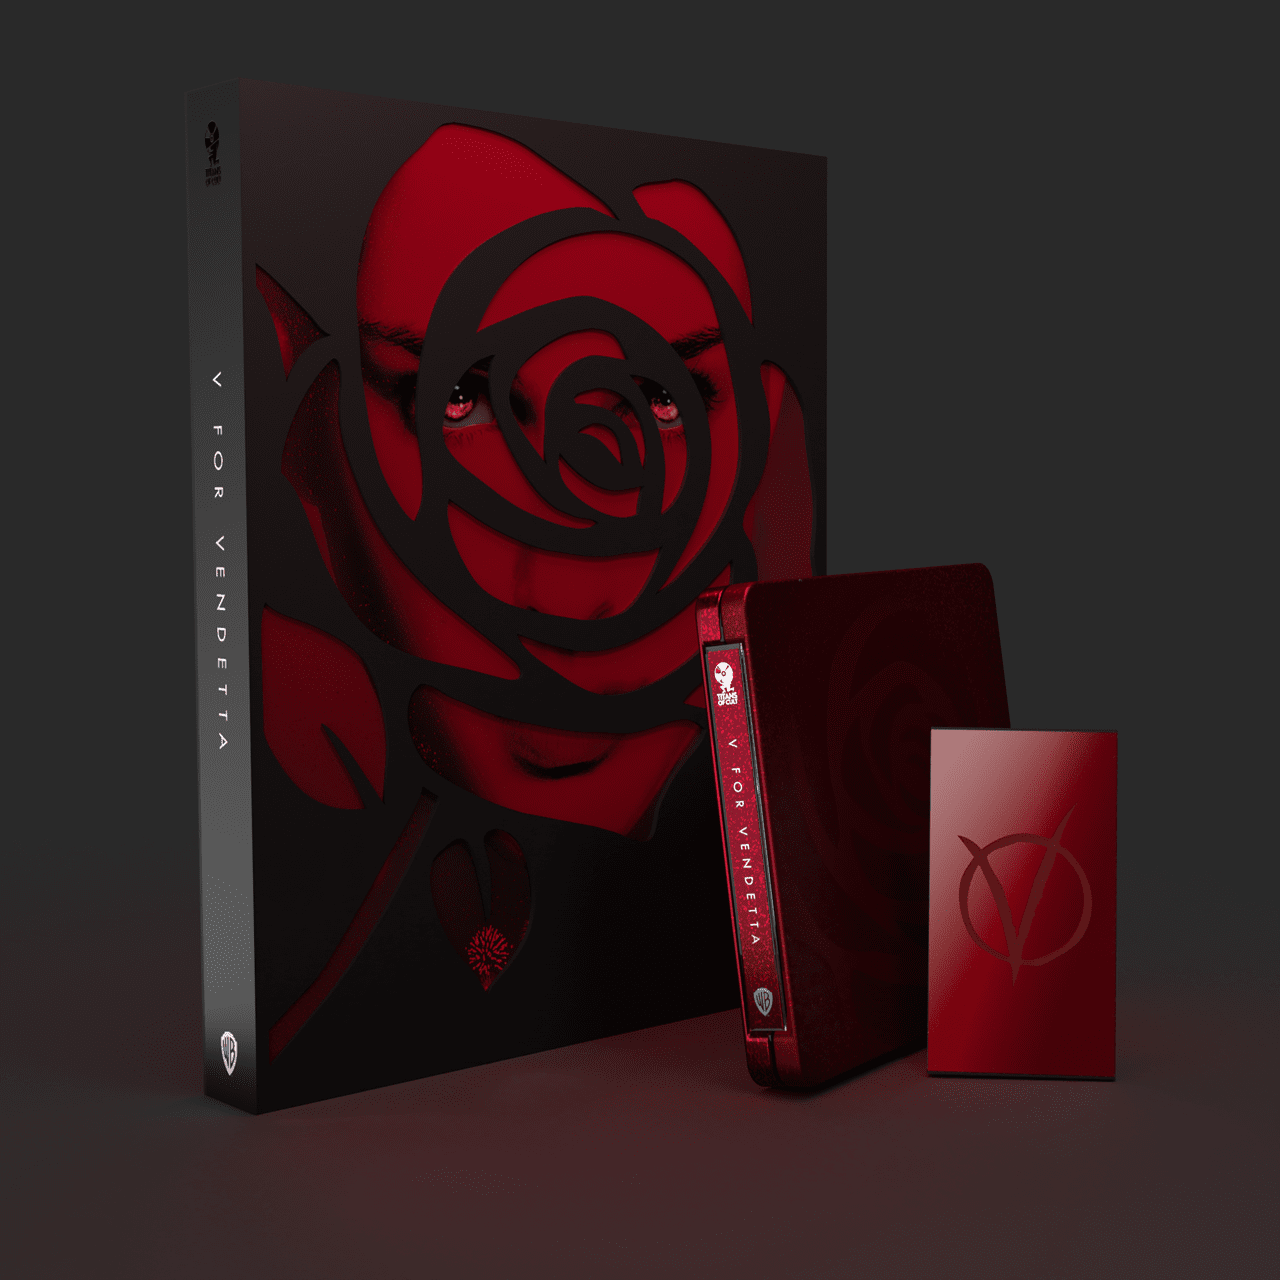 V for Vendetta Titans of Cult Limited Edition 4K Steelbook - 2